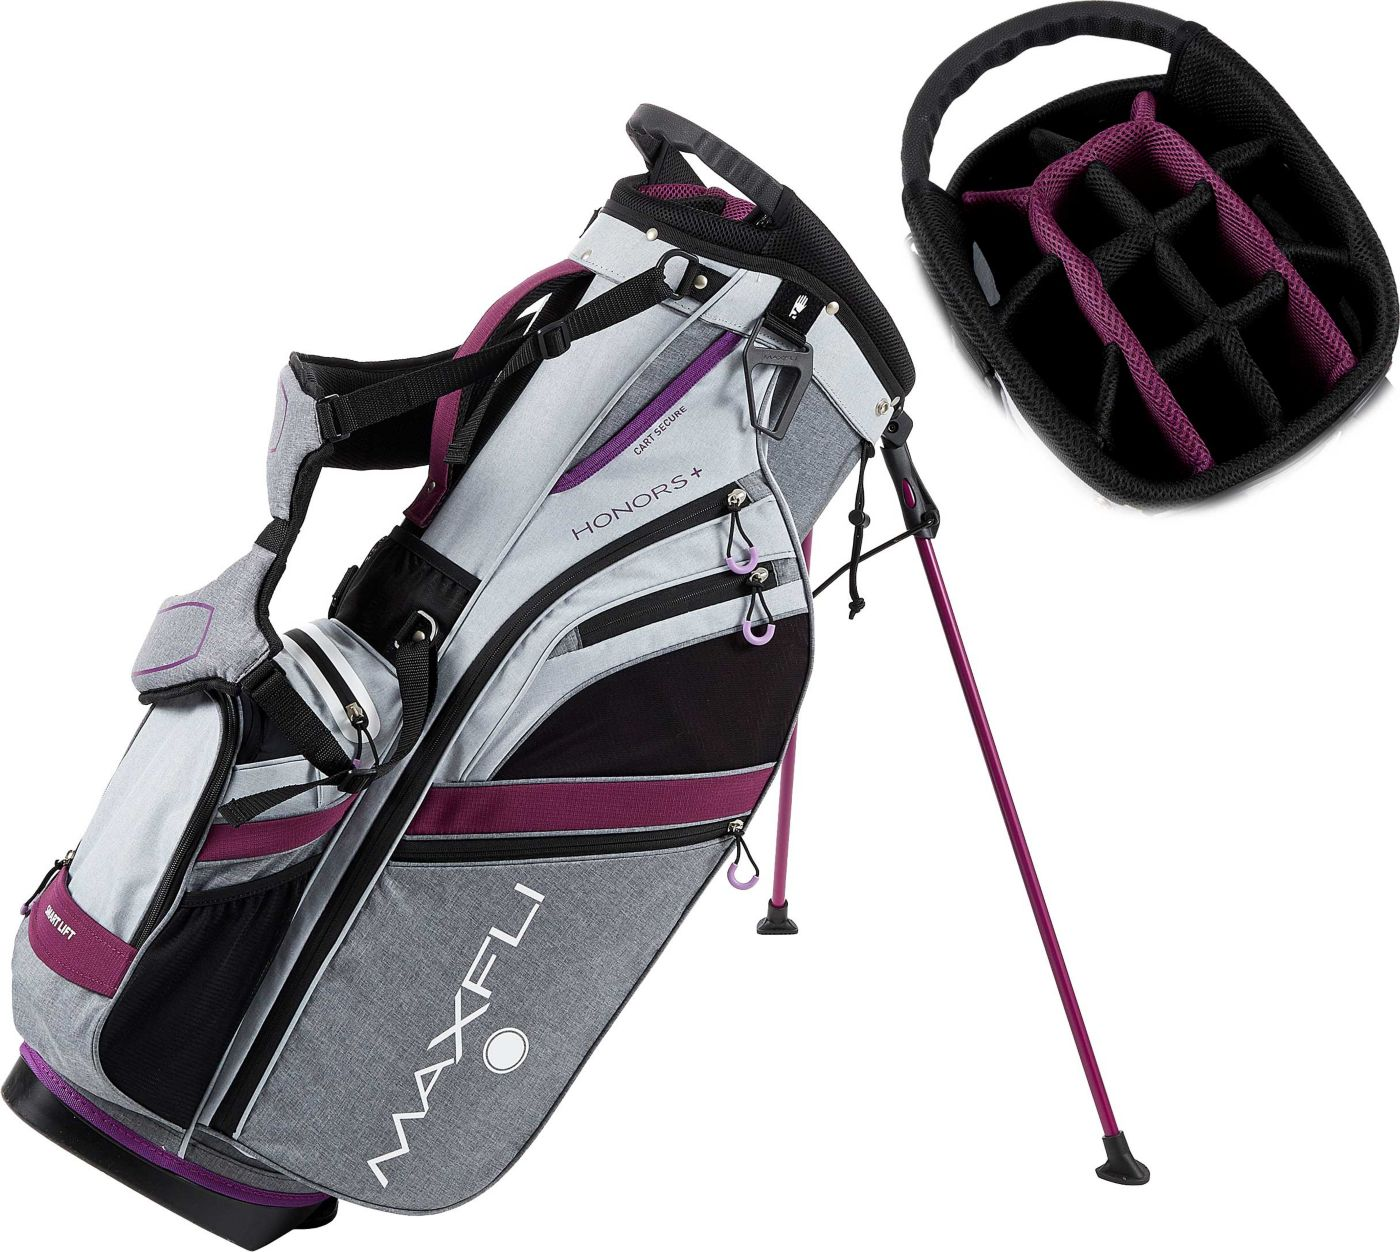 Maxfli Women's 2019 Honors Plus Stand Golf Bag